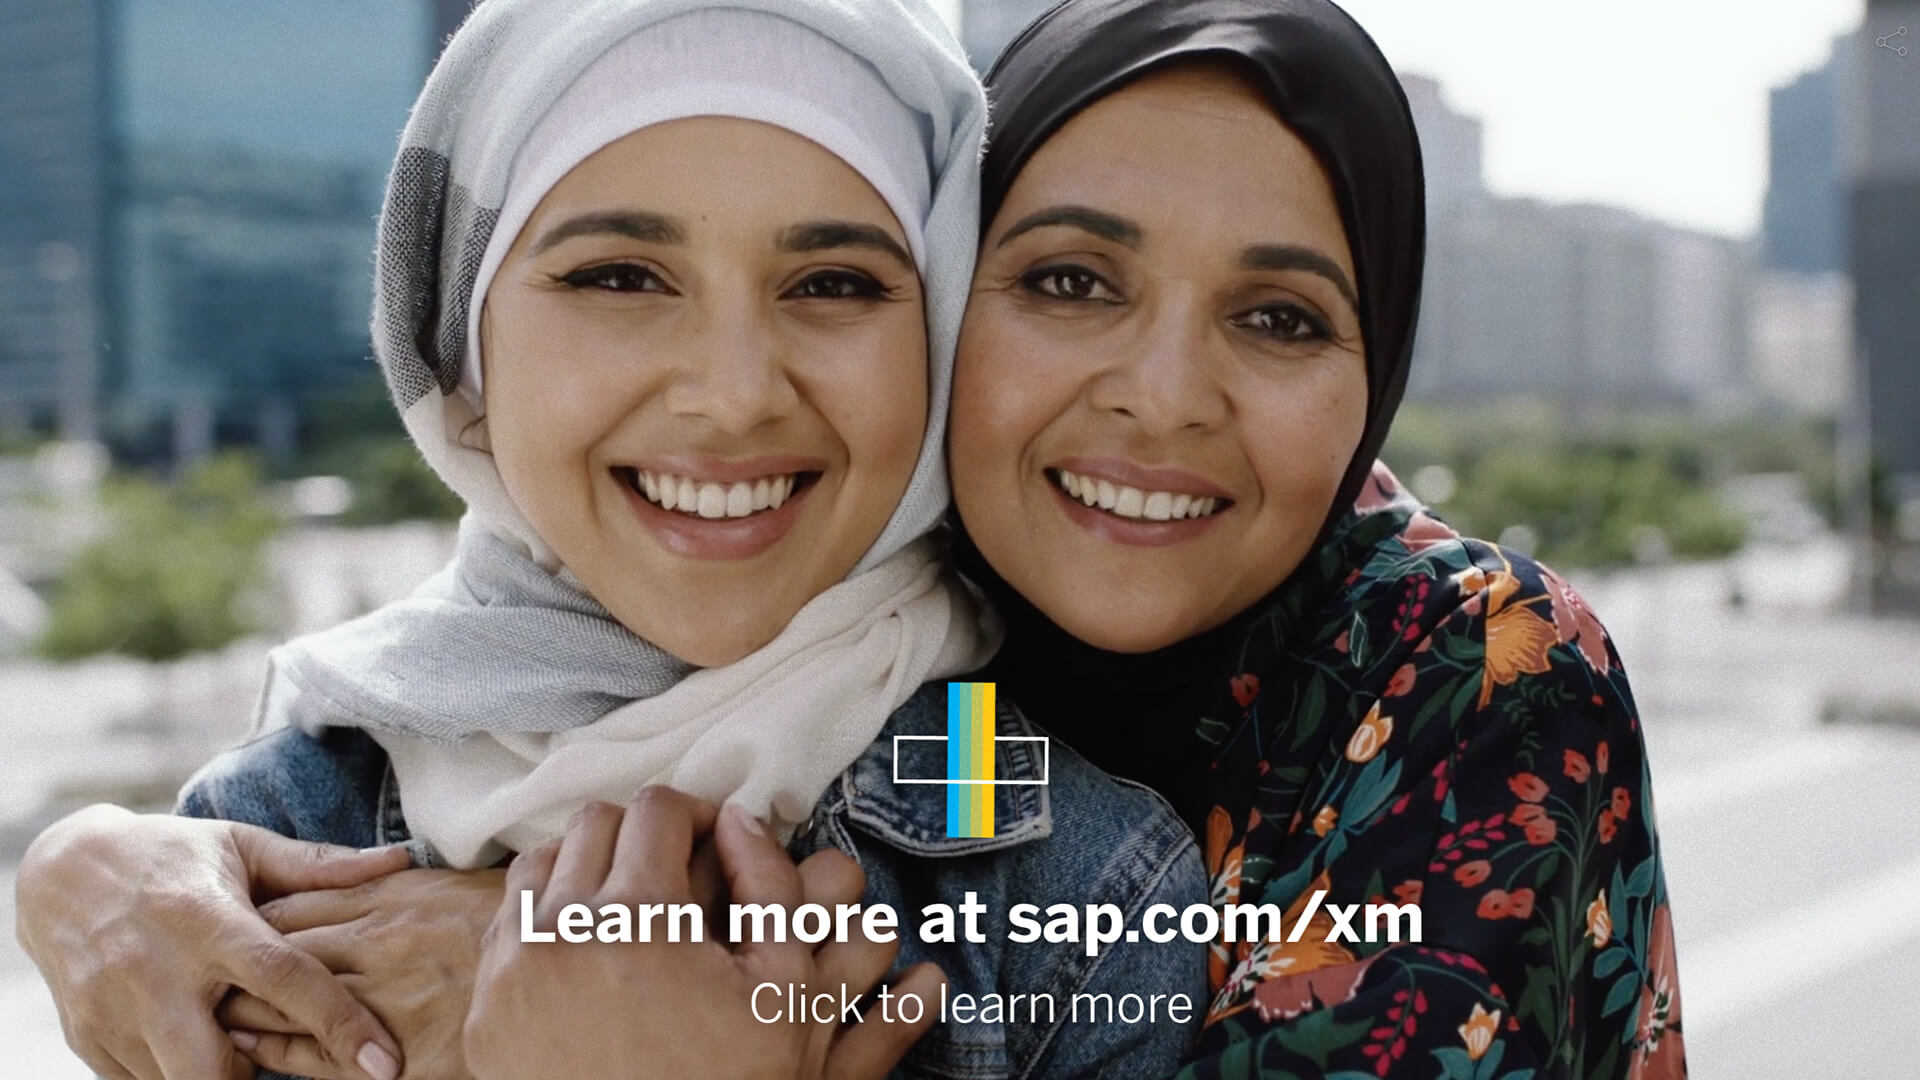 A still from an interactive video for SAP. Two women are hugging and looking into the camera. Below them is a clickable hotspot.